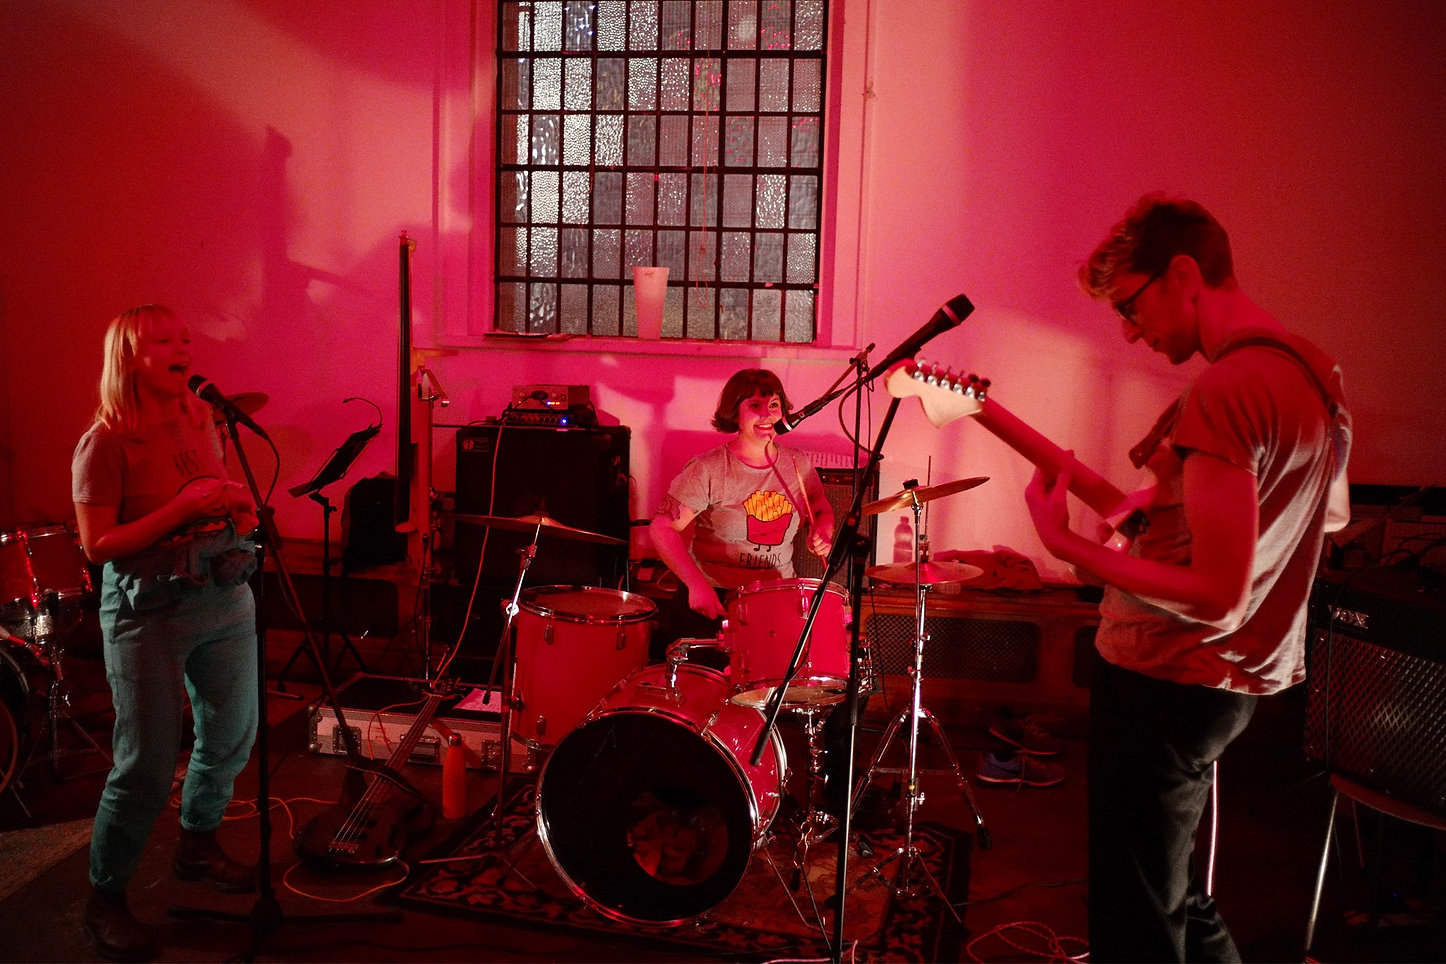 Image Description: A room lit with red lighting, showing Sophie on vocals, Kerri on drums, and Giles playing guitar.